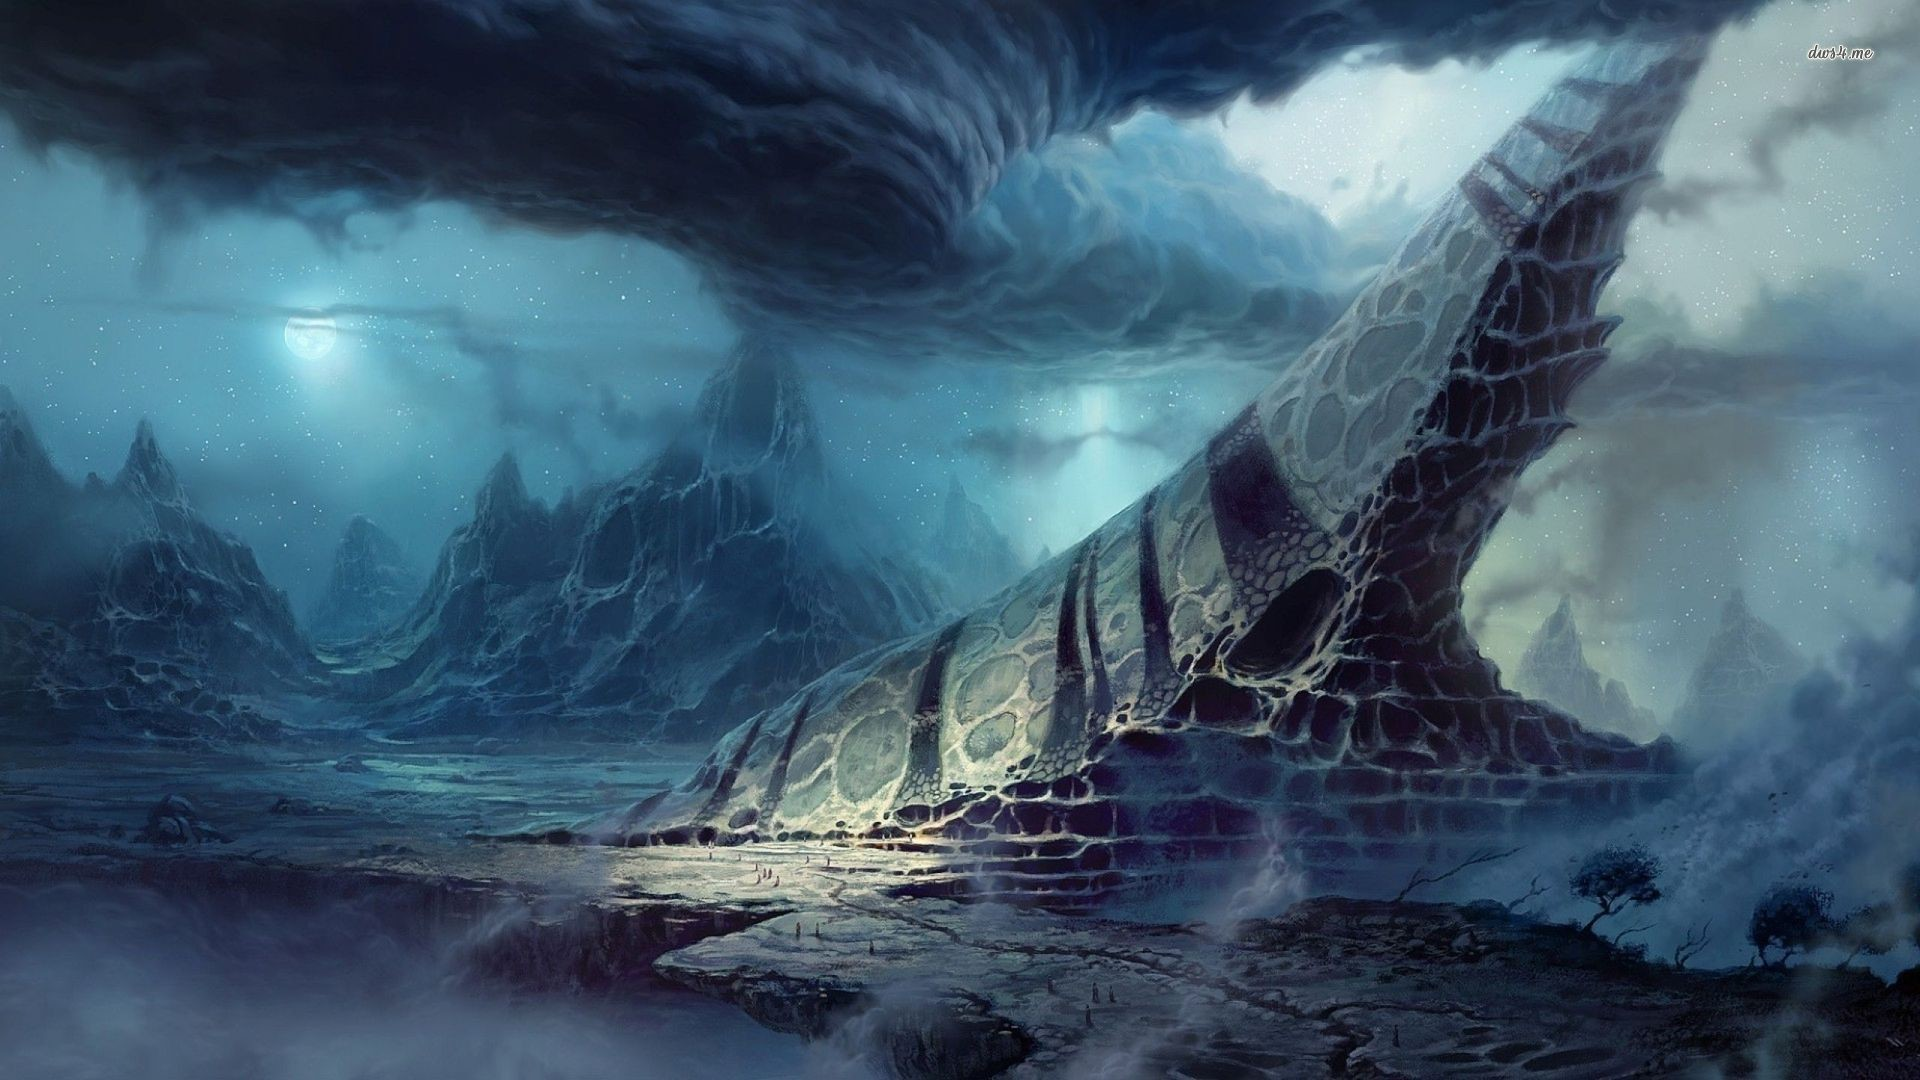 Epic fantasy wallpapers 70 images - Epic wallpapers 2560x1440 ...